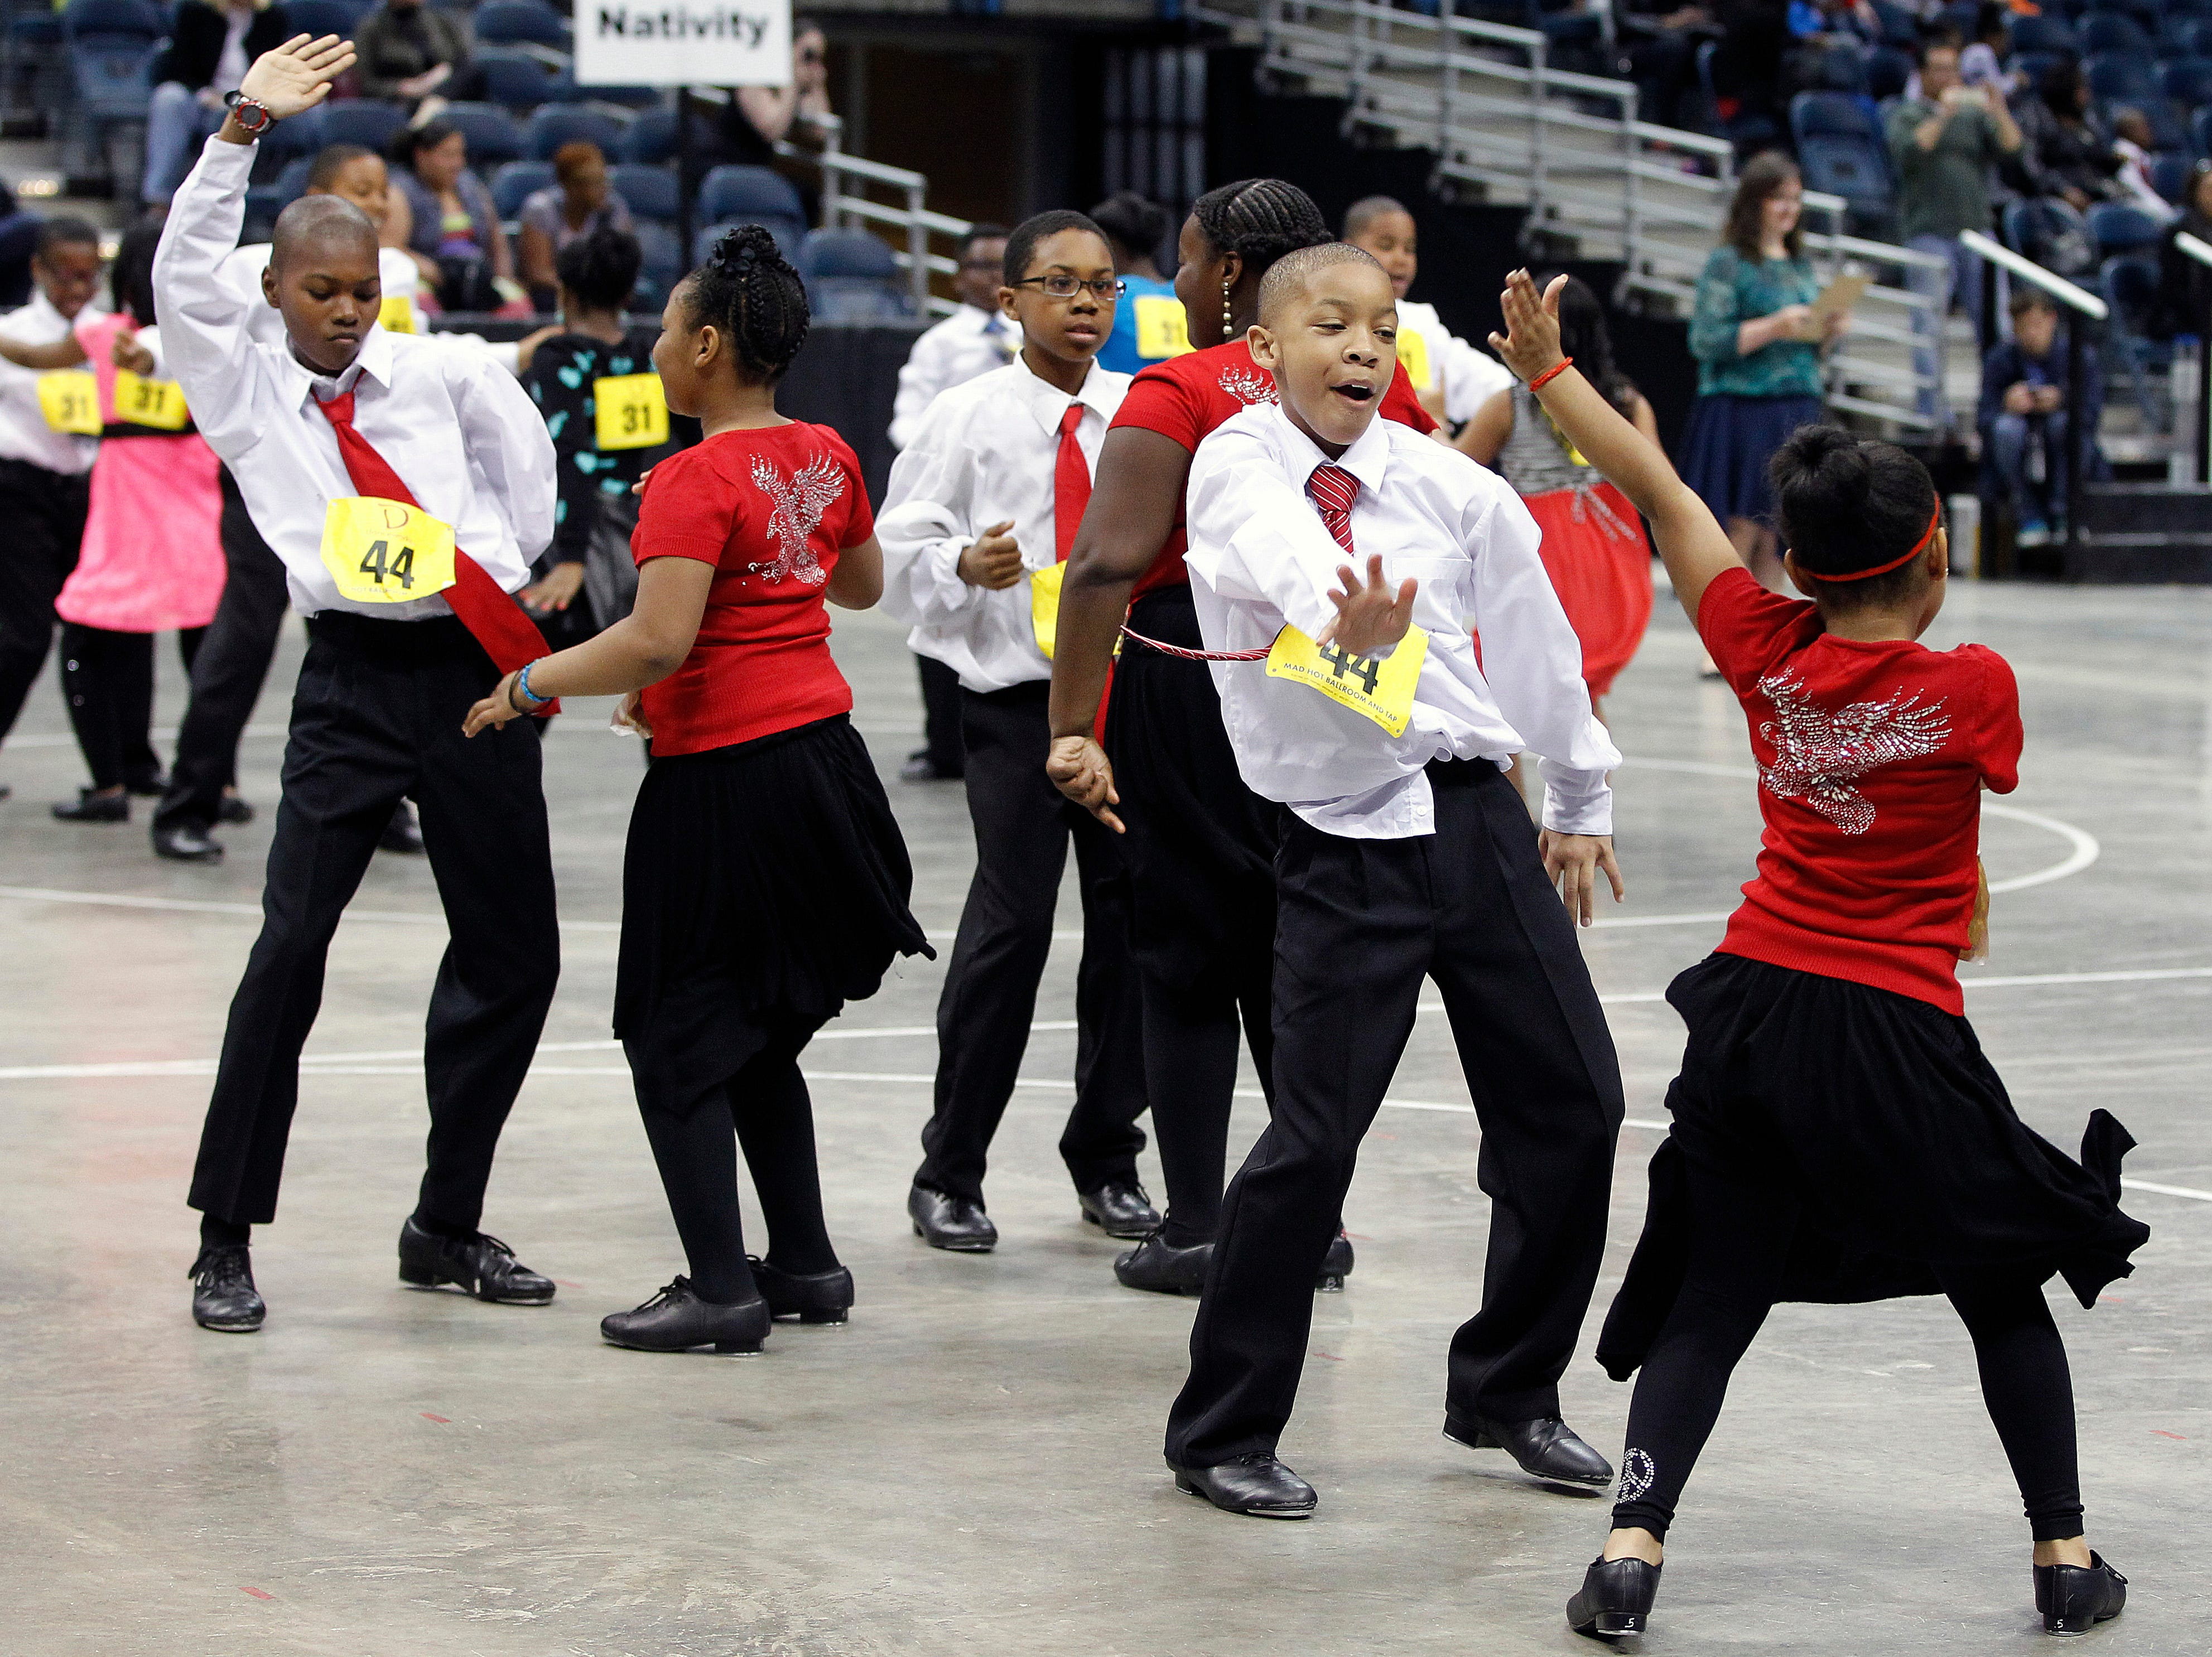 2014: Students from Siefert Elementary School dance during the annual Mad Hot Ballroom and Tap competition at the BMO Harris Bradley Center.